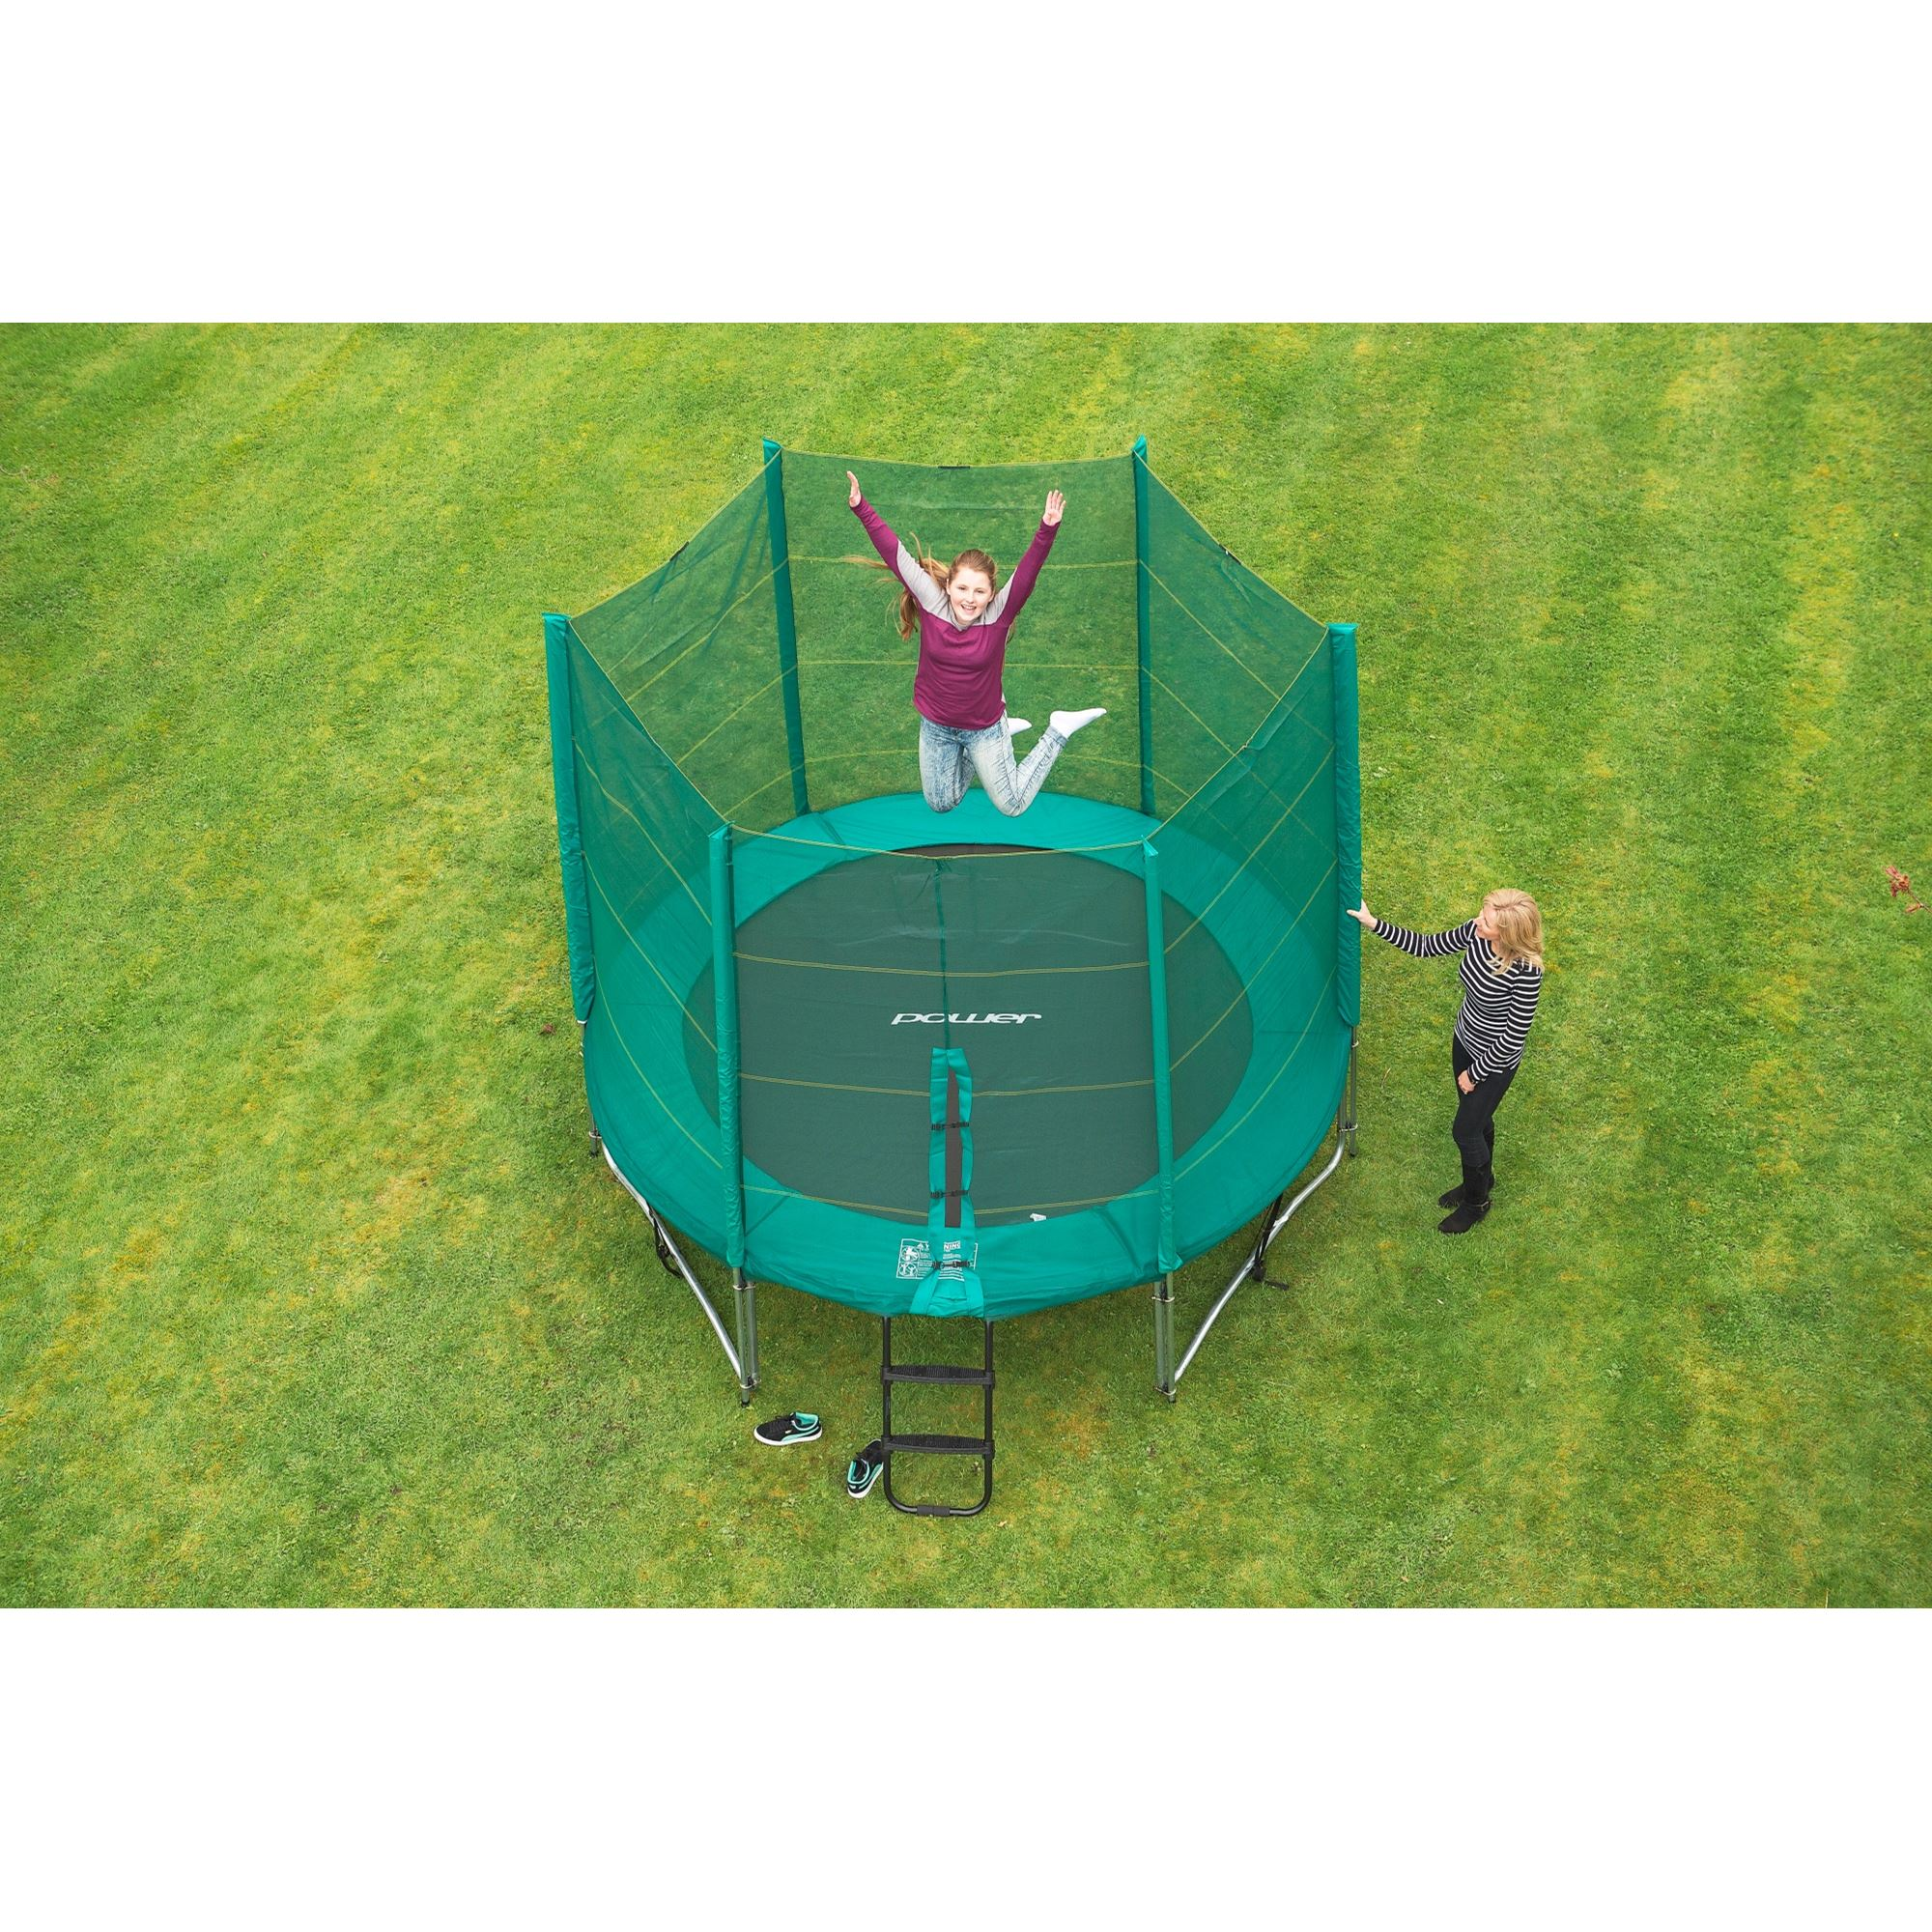 10ft Trampoline and Enclosure